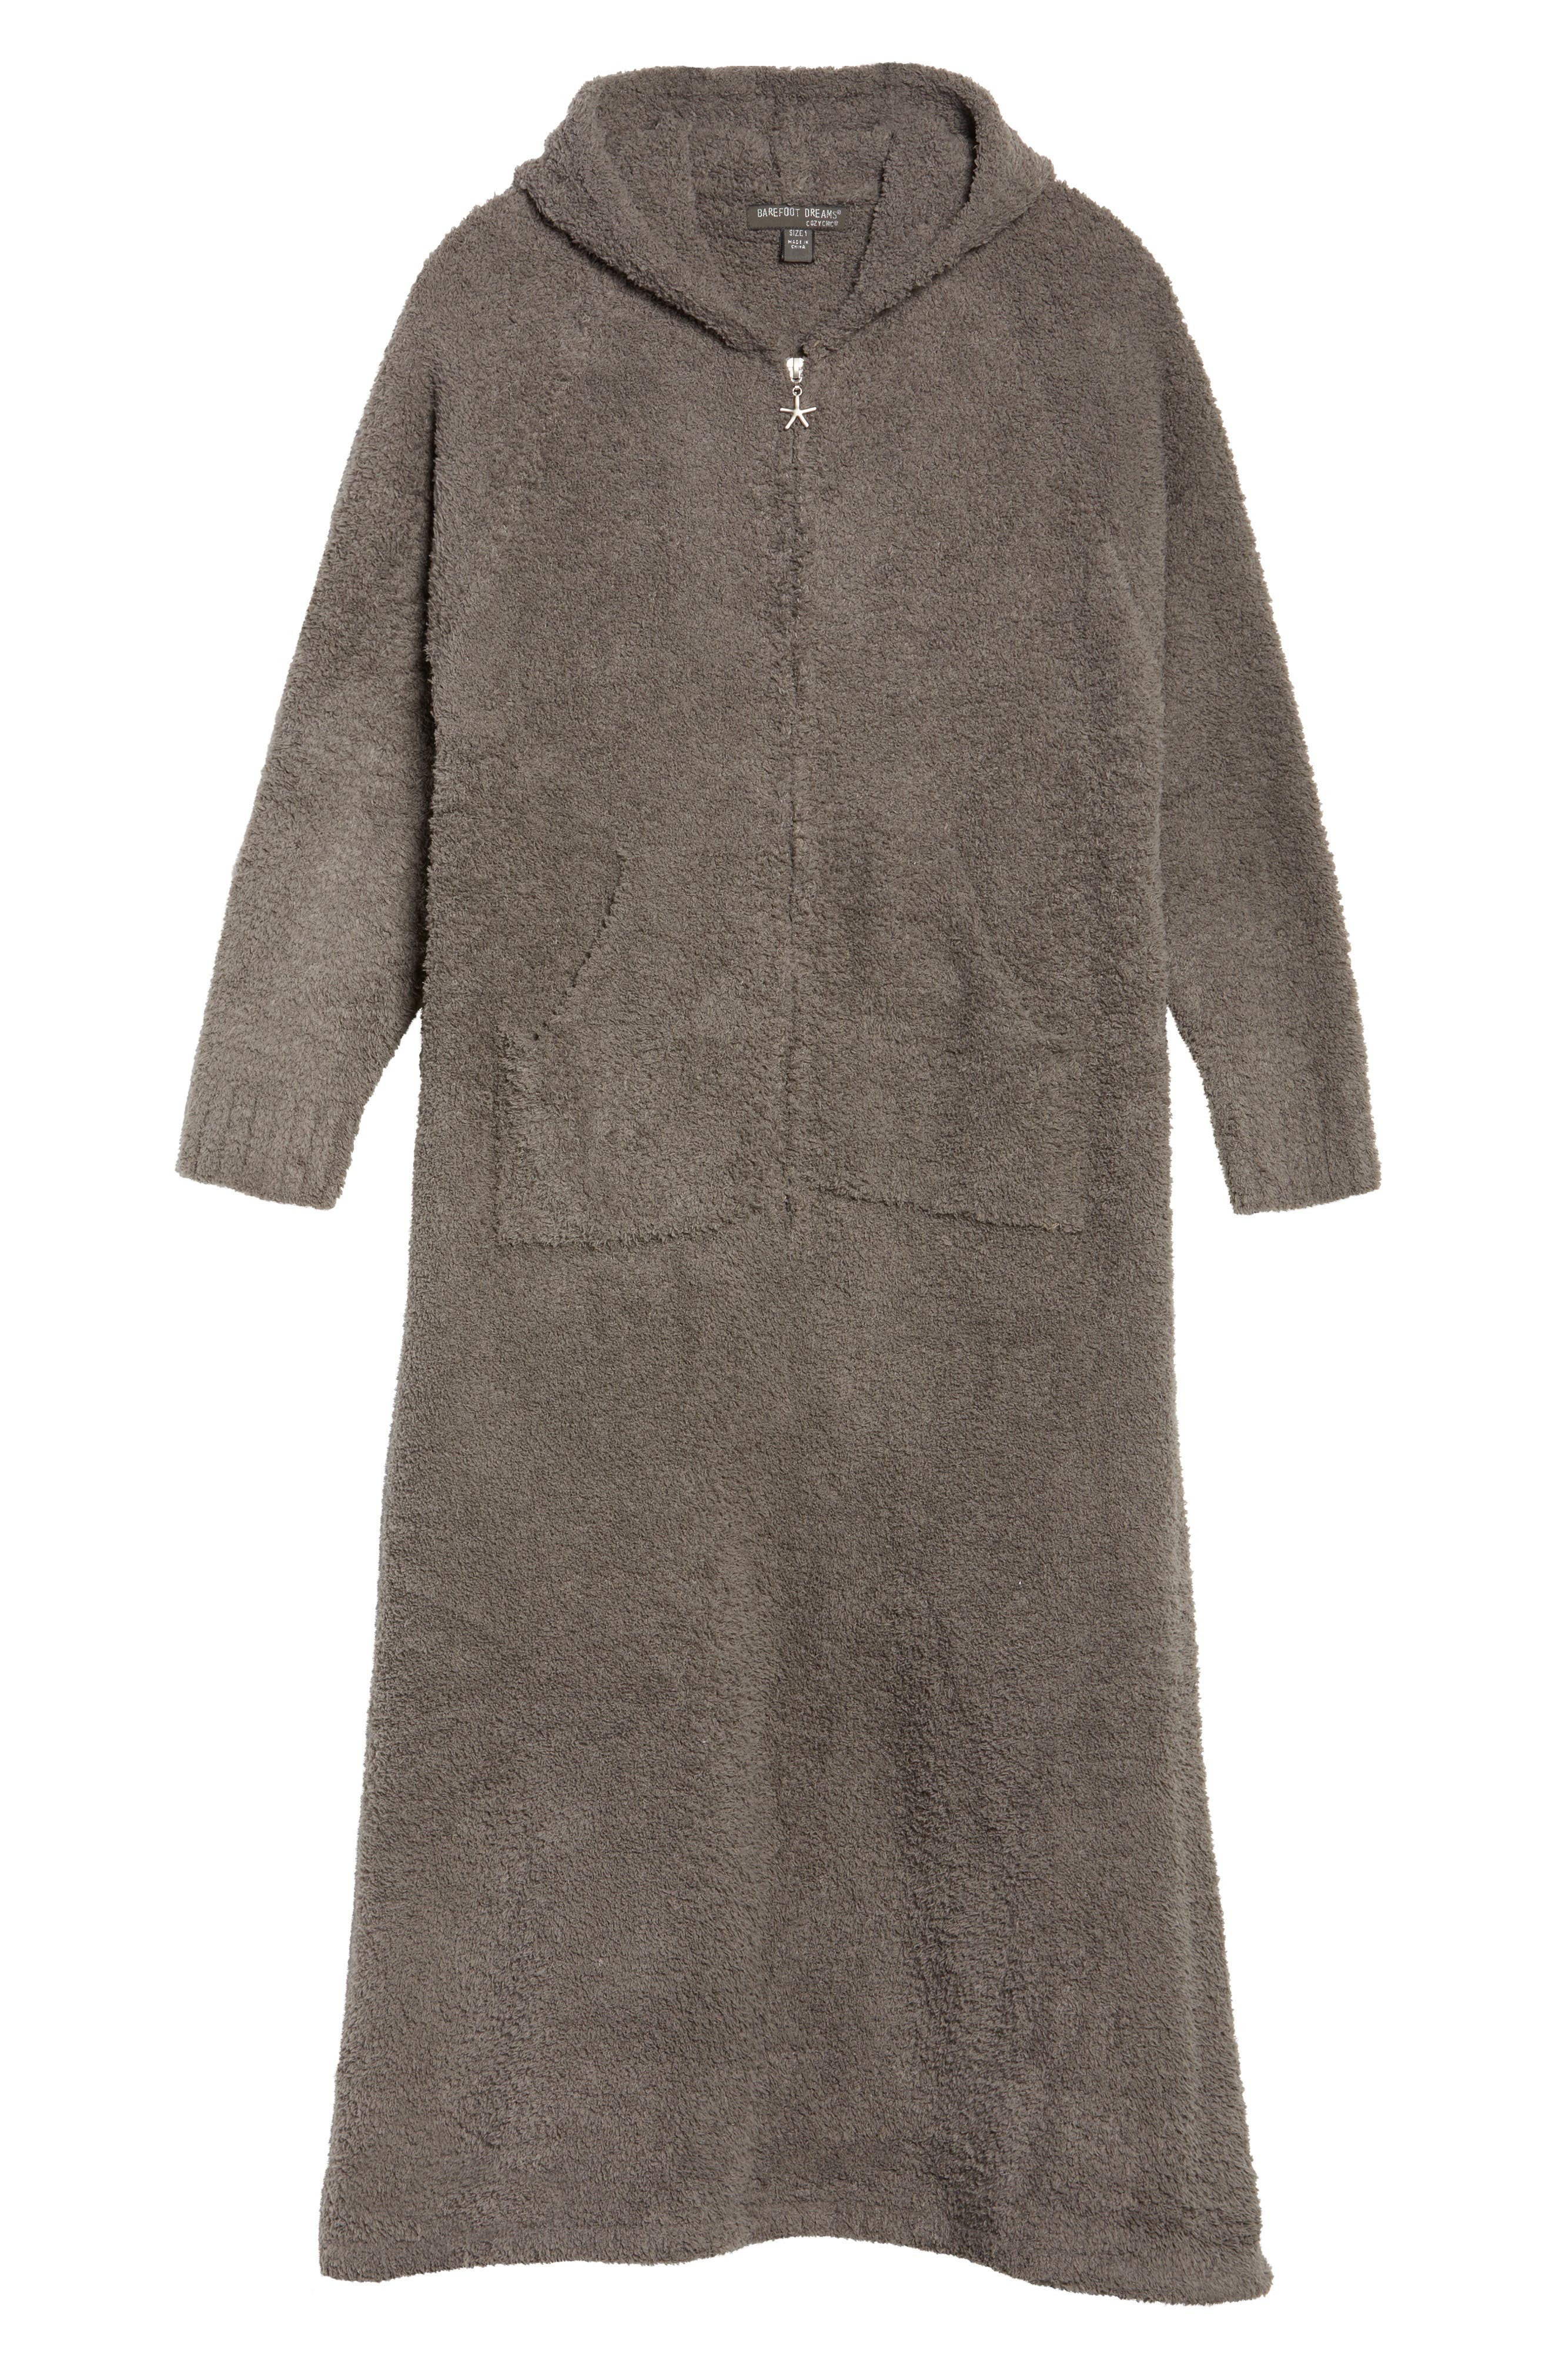 CozyChic<sup>®</sup> Hooded Zip Robe,                             Alternate thumbnail 6, color,                             020